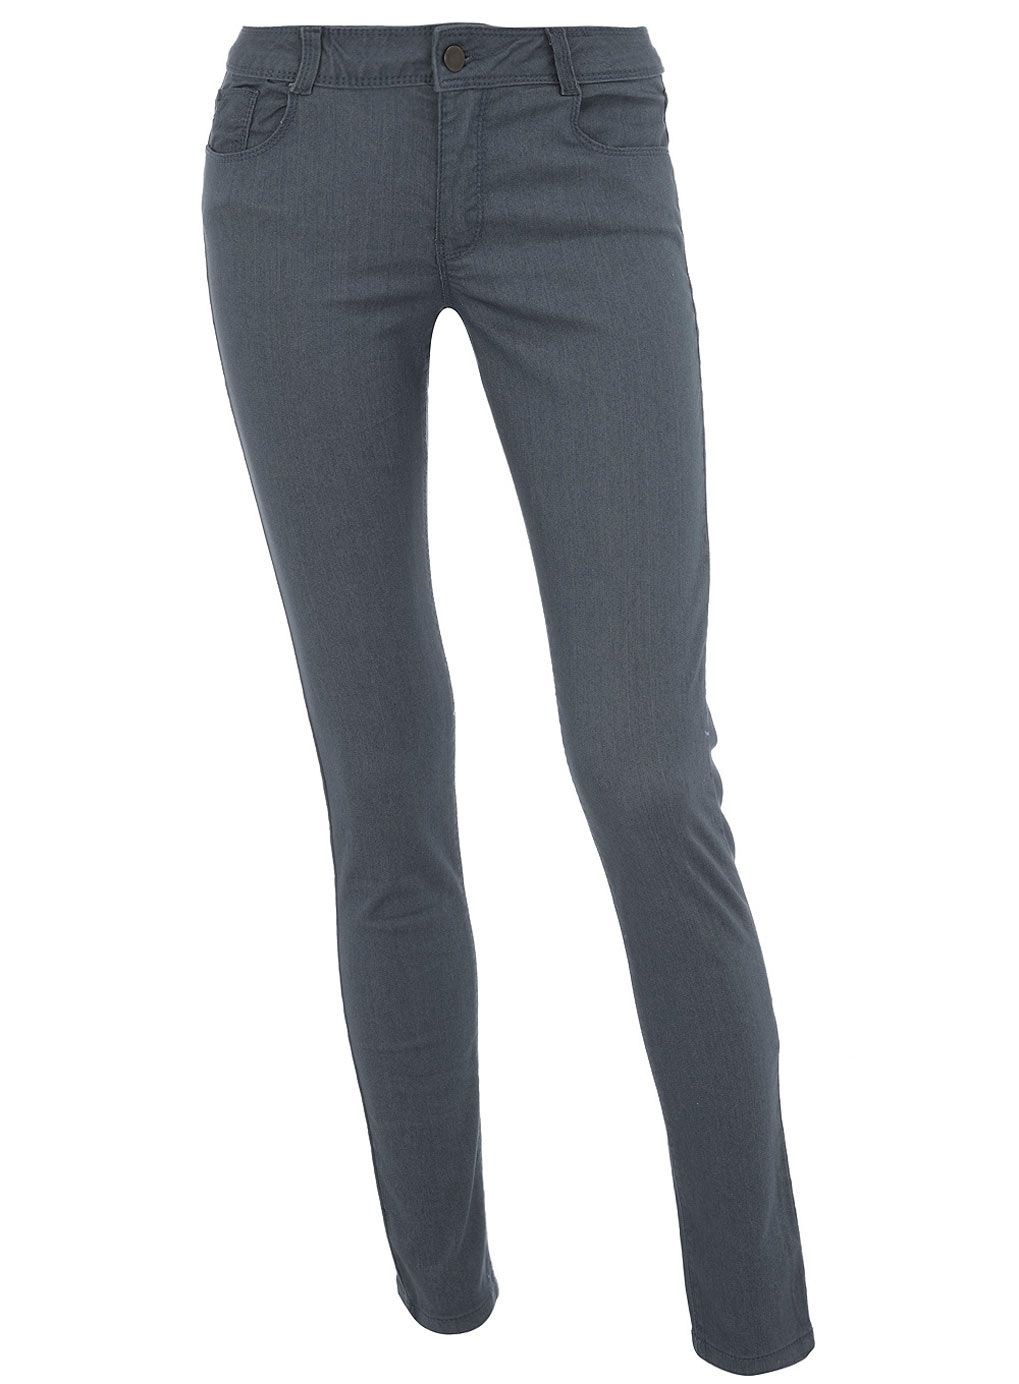 Bailey ultra stretch super skinny jeans